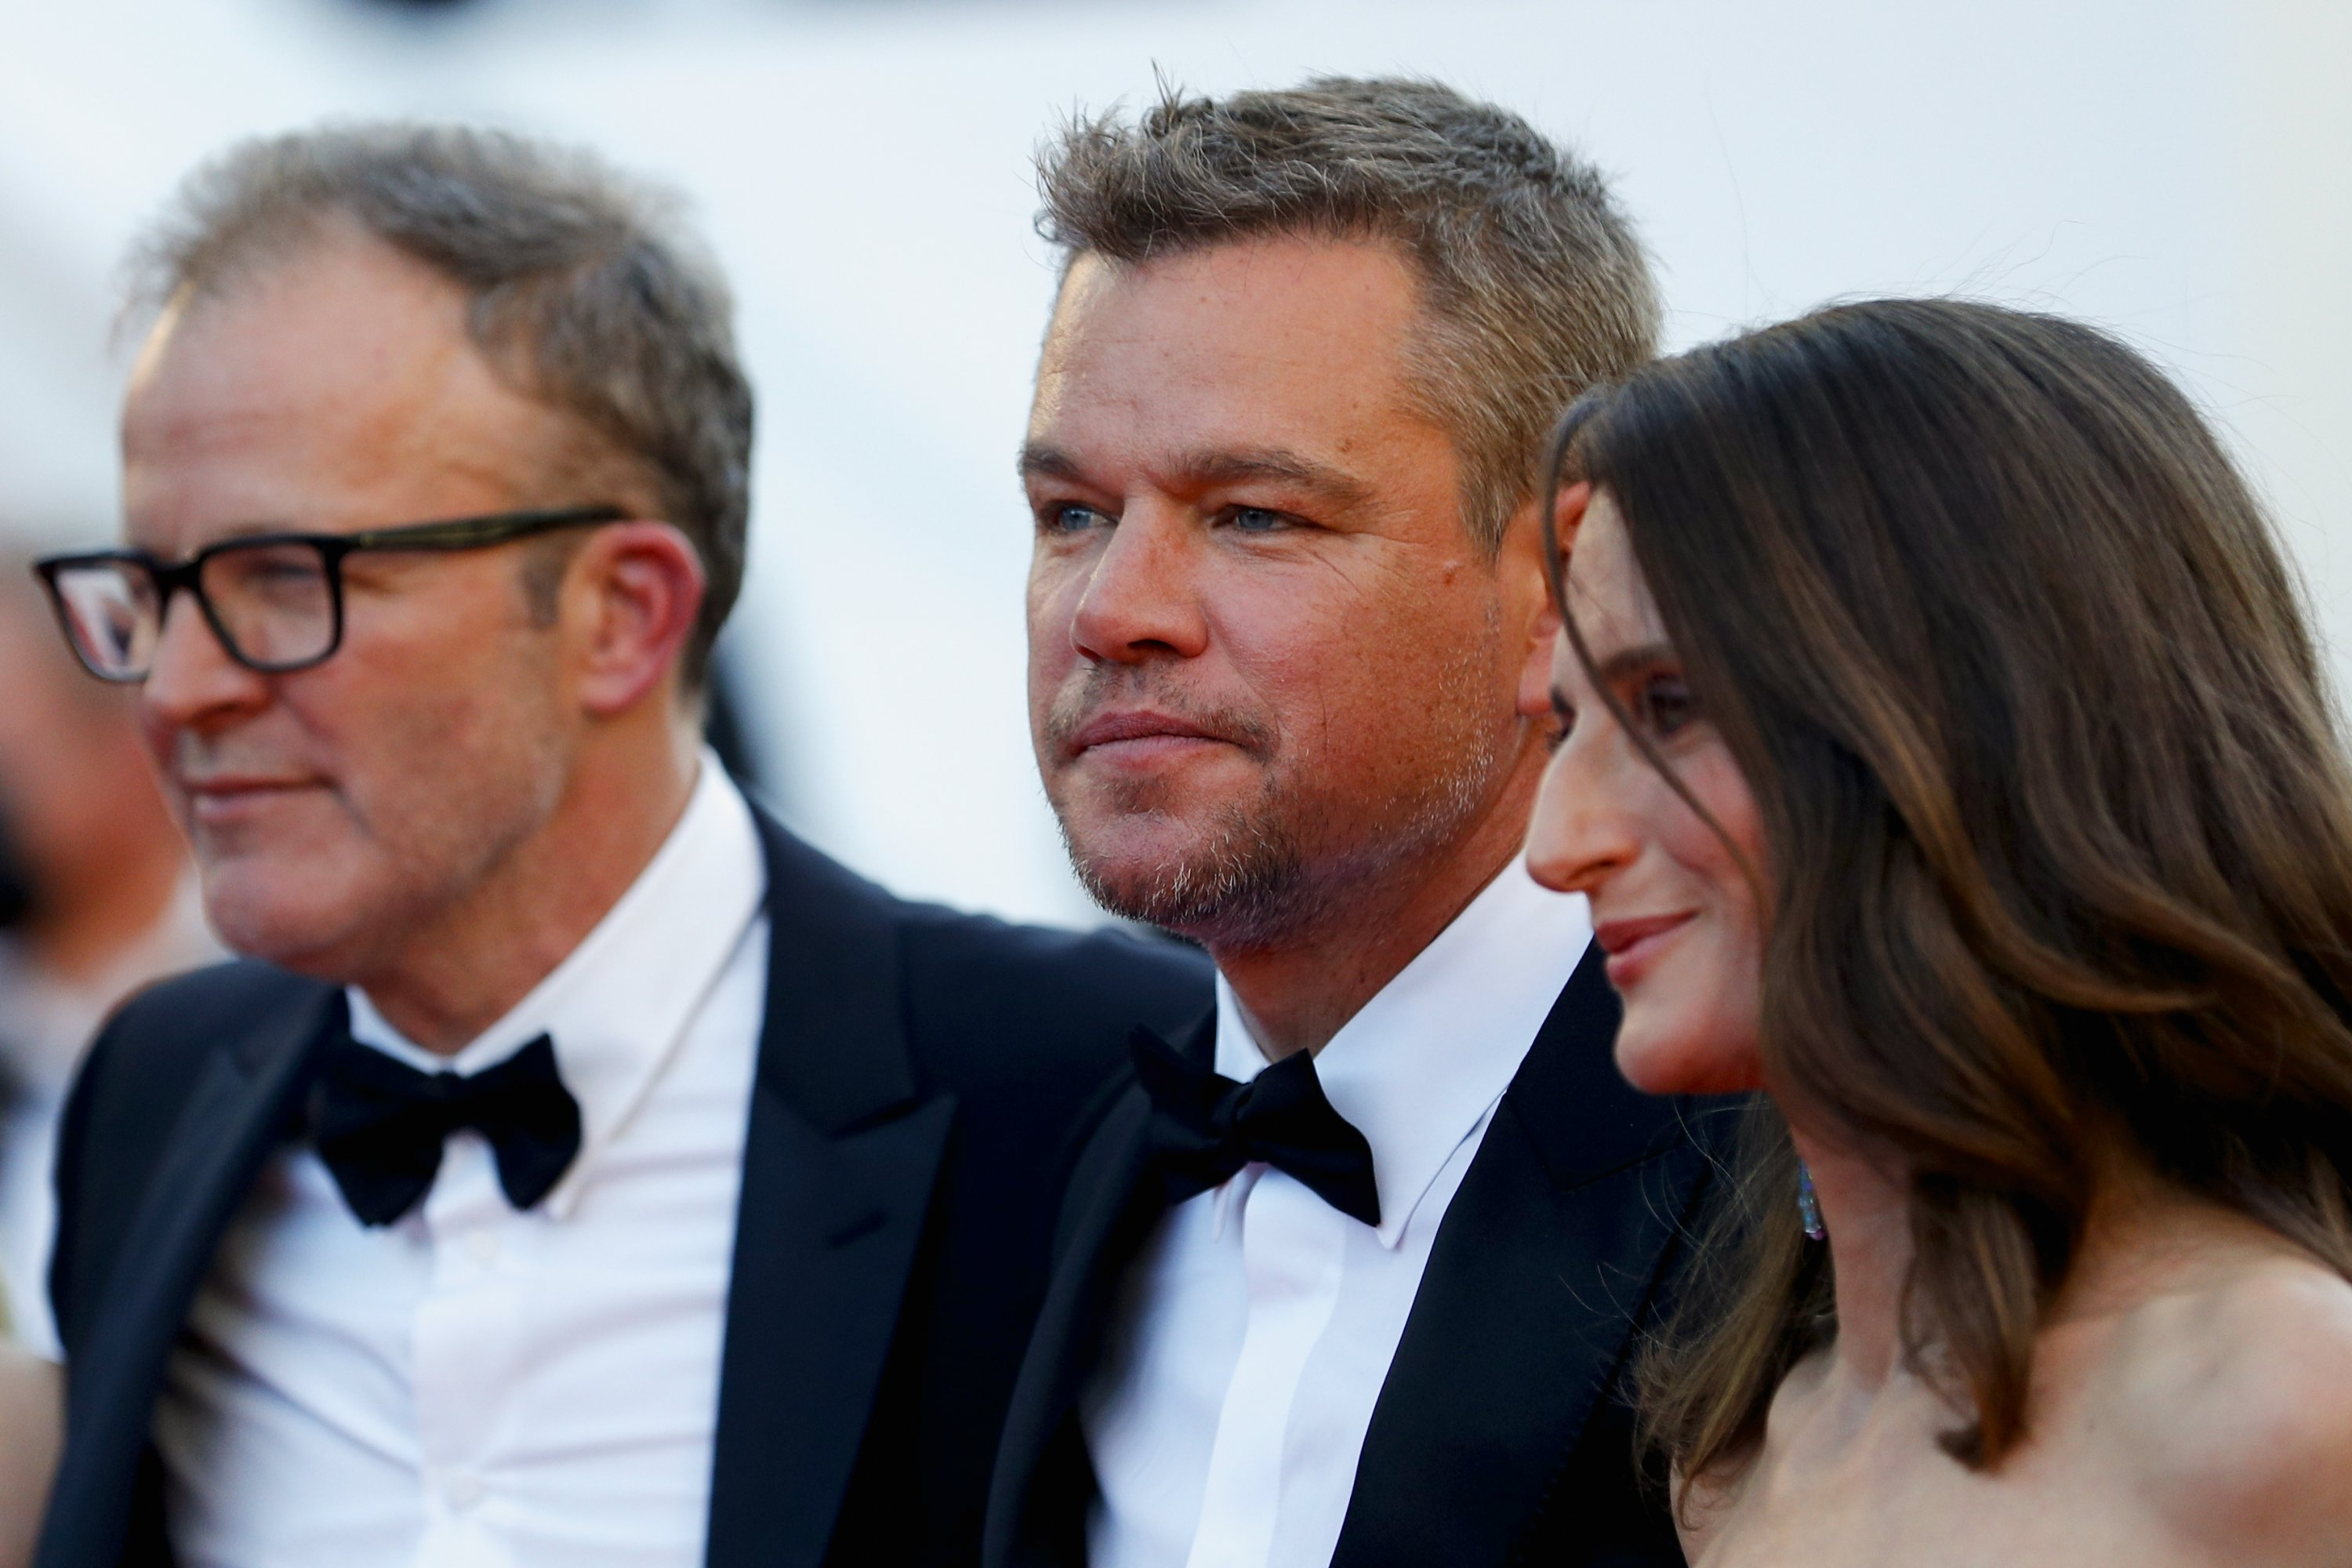 Director Tom McCarthy (L) and cast members Matt Damon (C) and Camille Cottin pose for a photo on the red carpet at the 74th Cannes Film Festival, Cannes, France, July 8, 2021. (Reuters Photo)